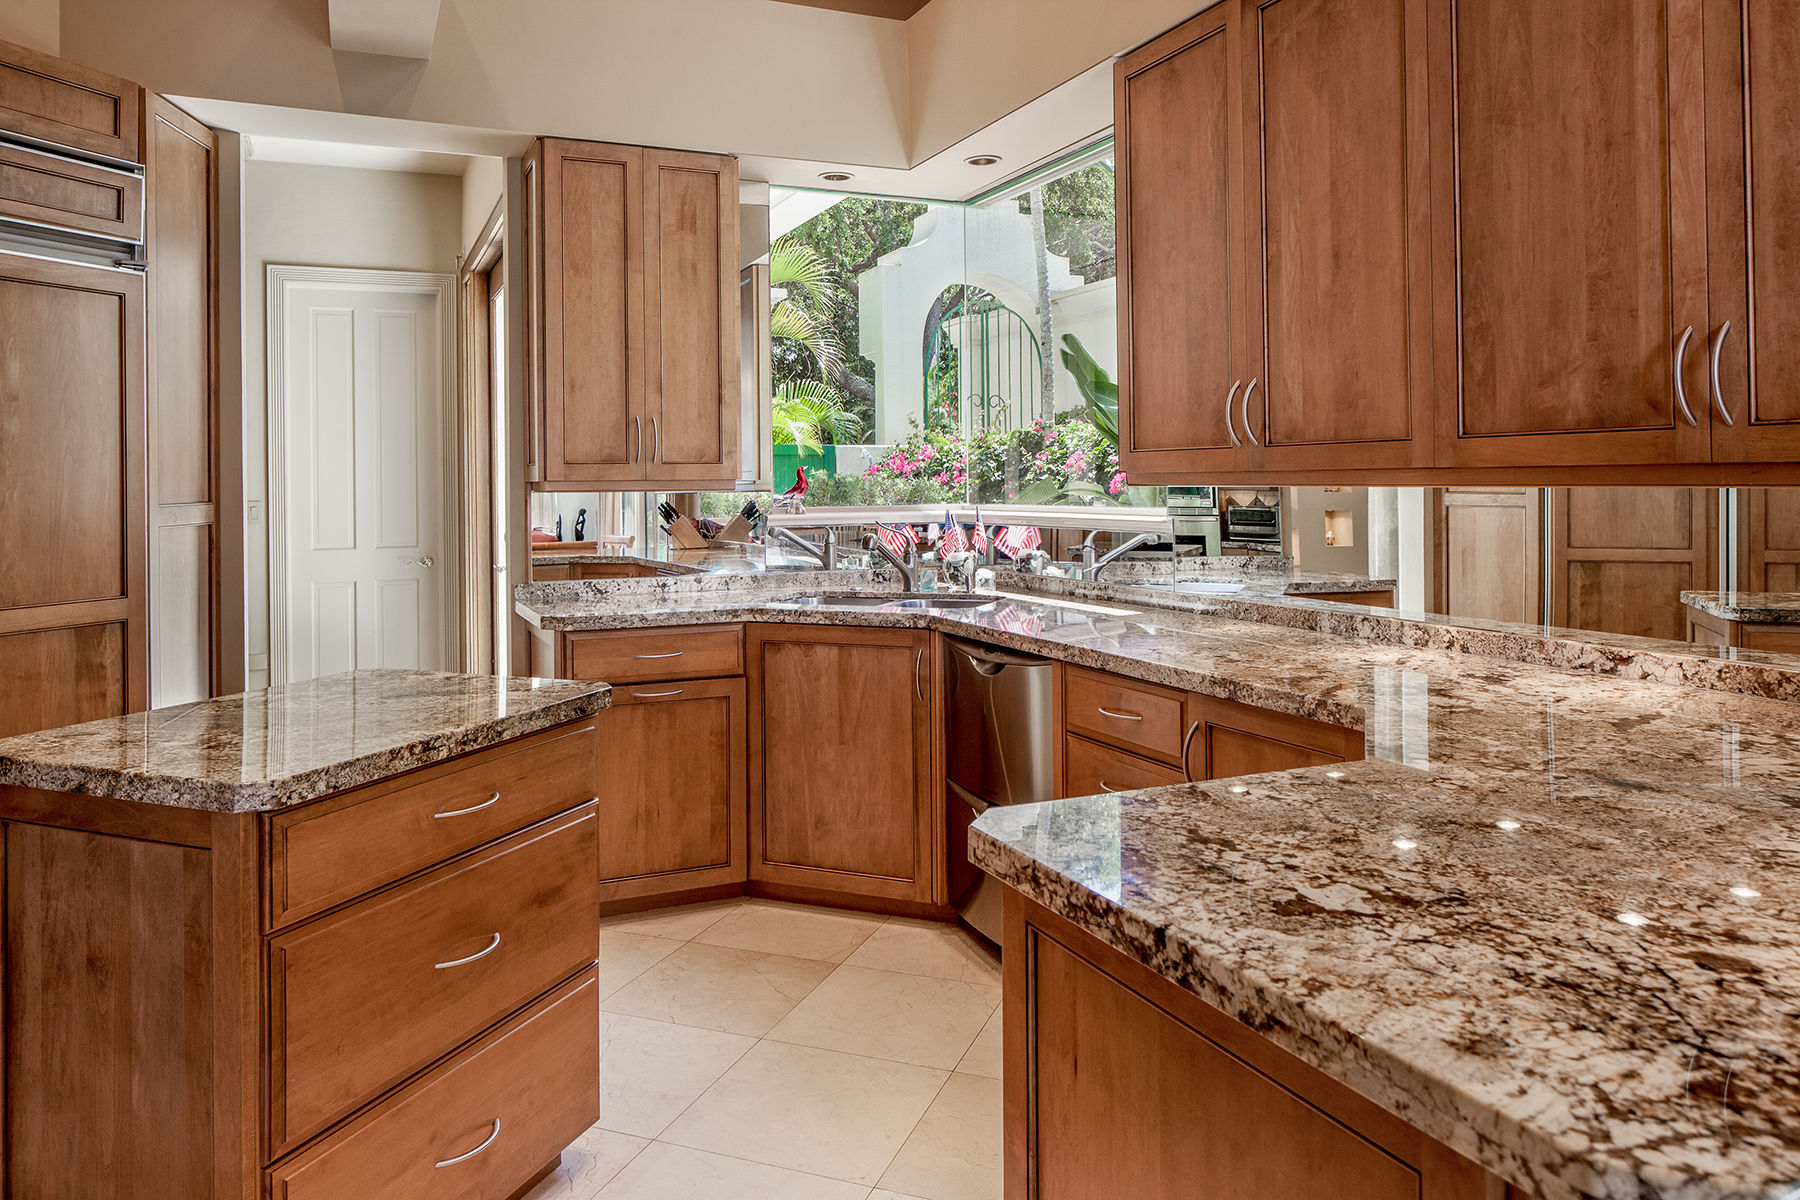 Additional photo for property listing at PELICAN BAY - VIZCAYA AT BAY COLONY 7855  Vizcaya Way,  Naples, Florida 34108 United States